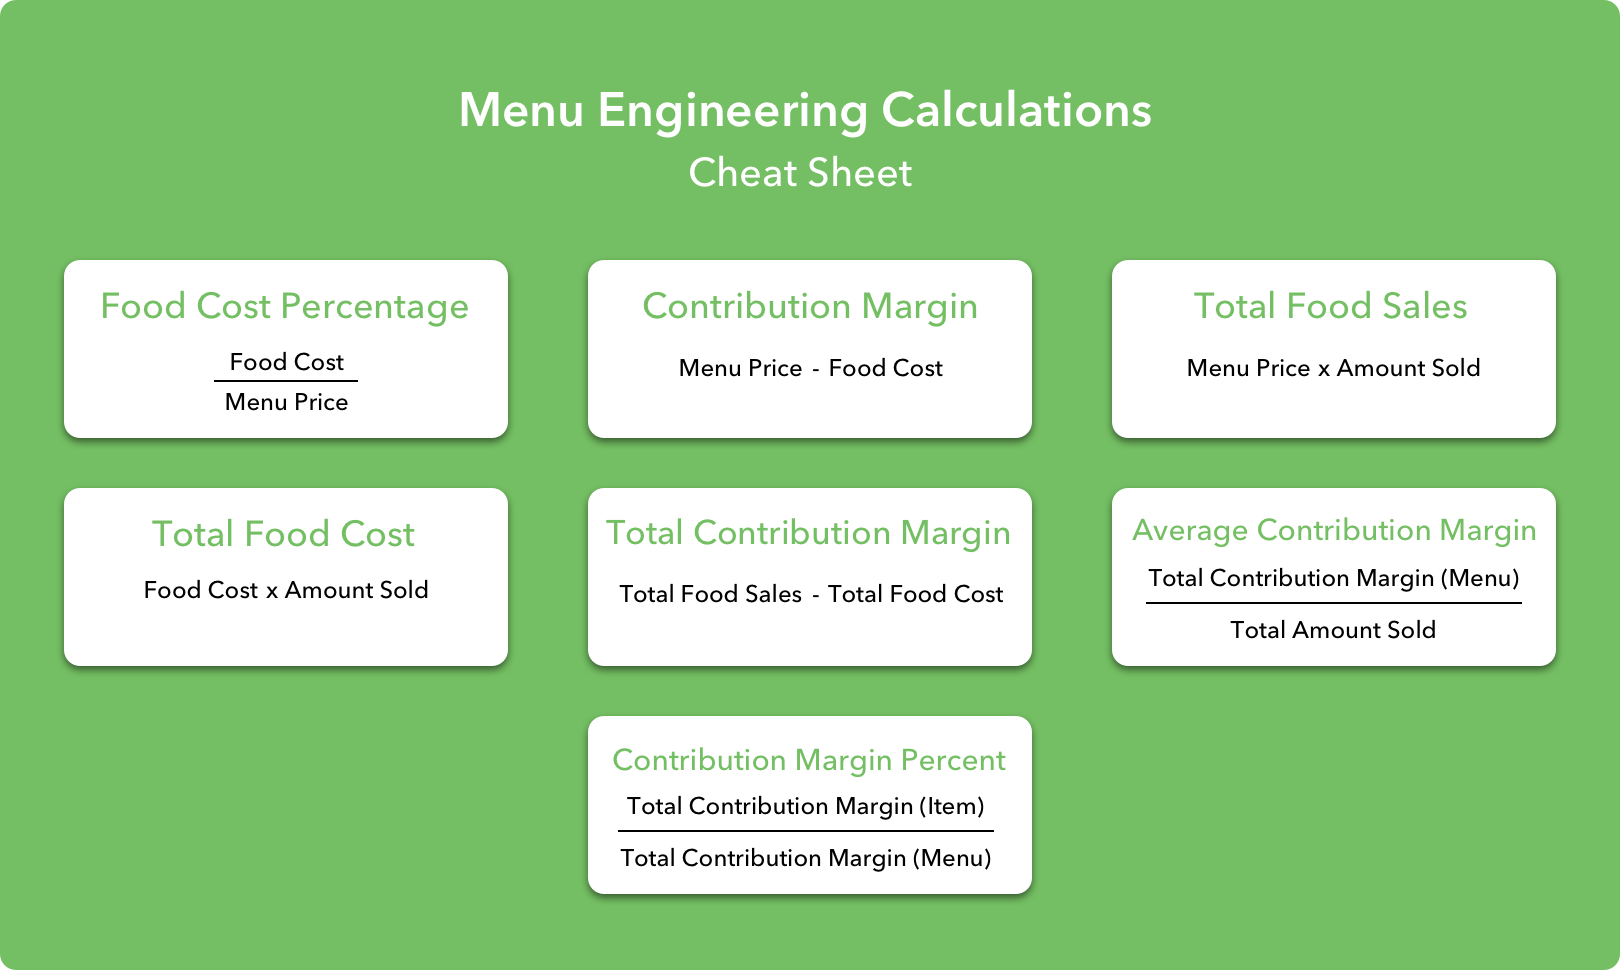 Menu Engineering: How to Increase Profits by 20% (Step-by